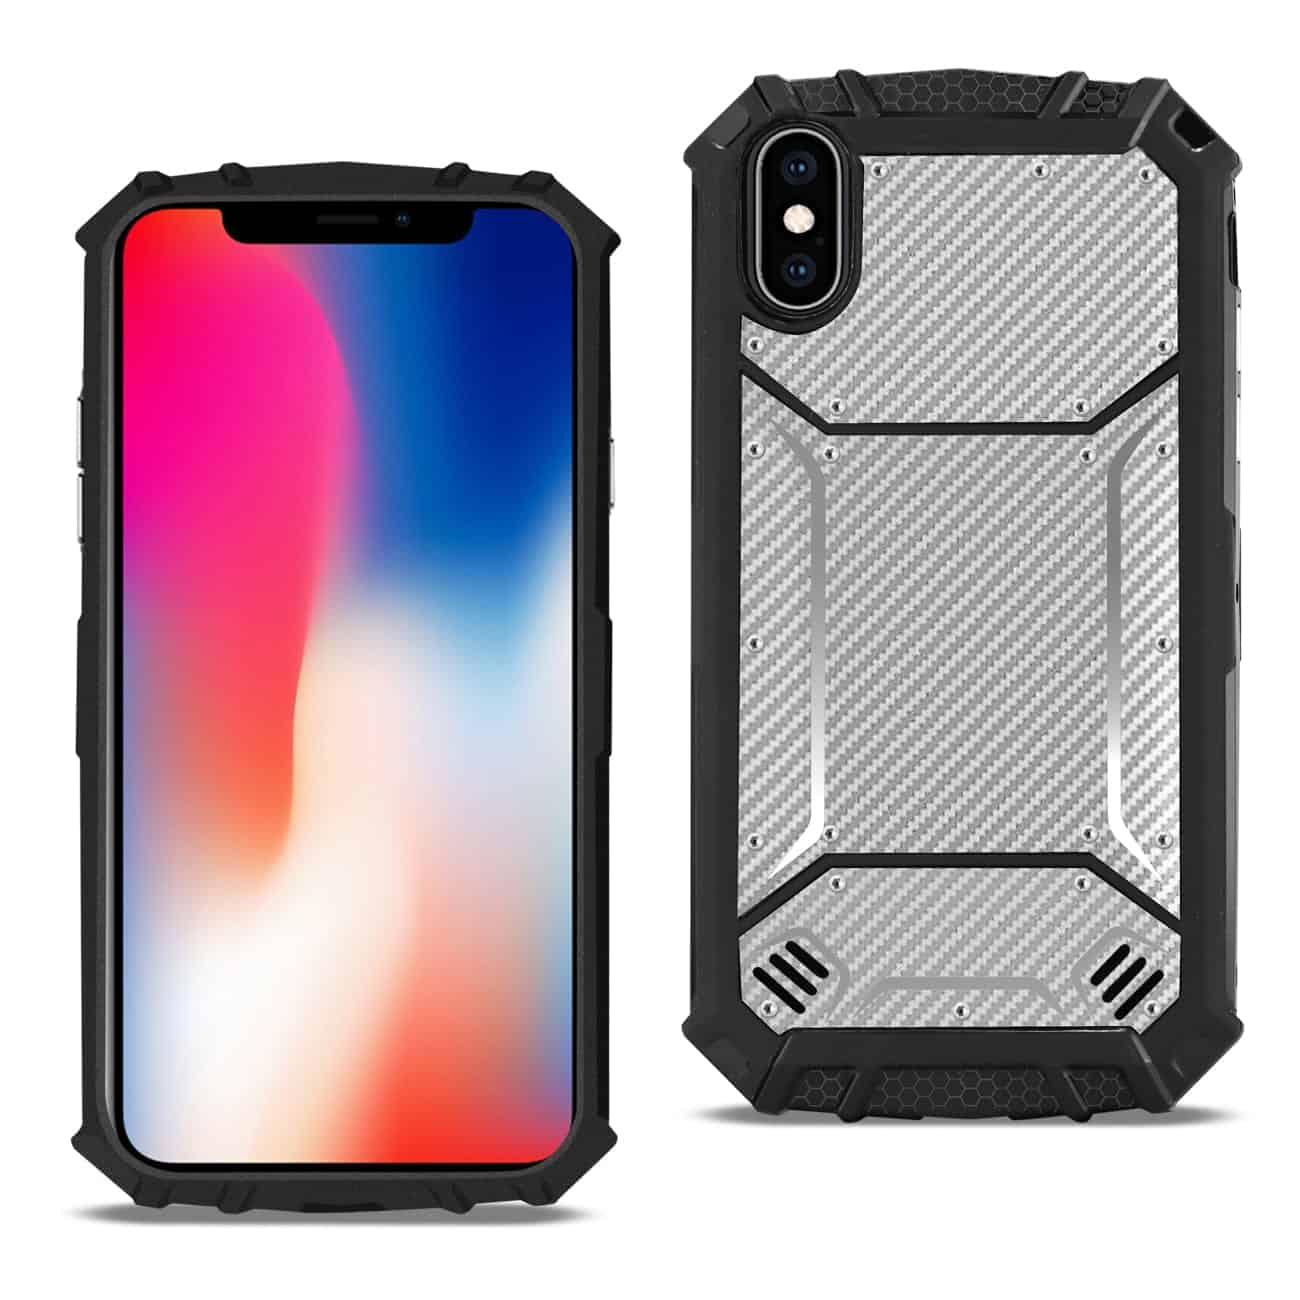 APPLE IPHONE X Carbon Fiber Hard-shell Case In Gray